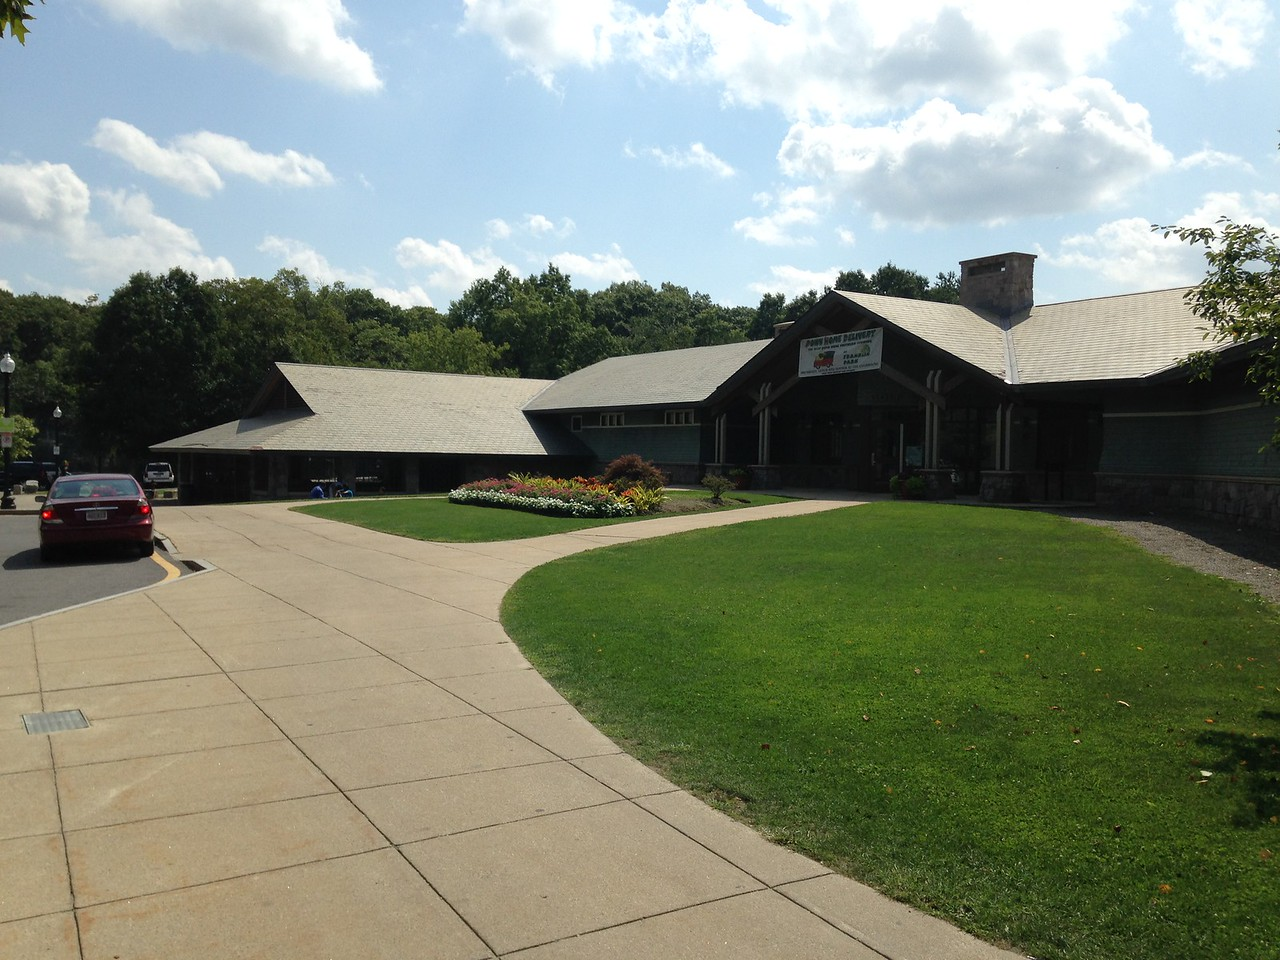 Clubhouse at the golf course in Franklin Park.